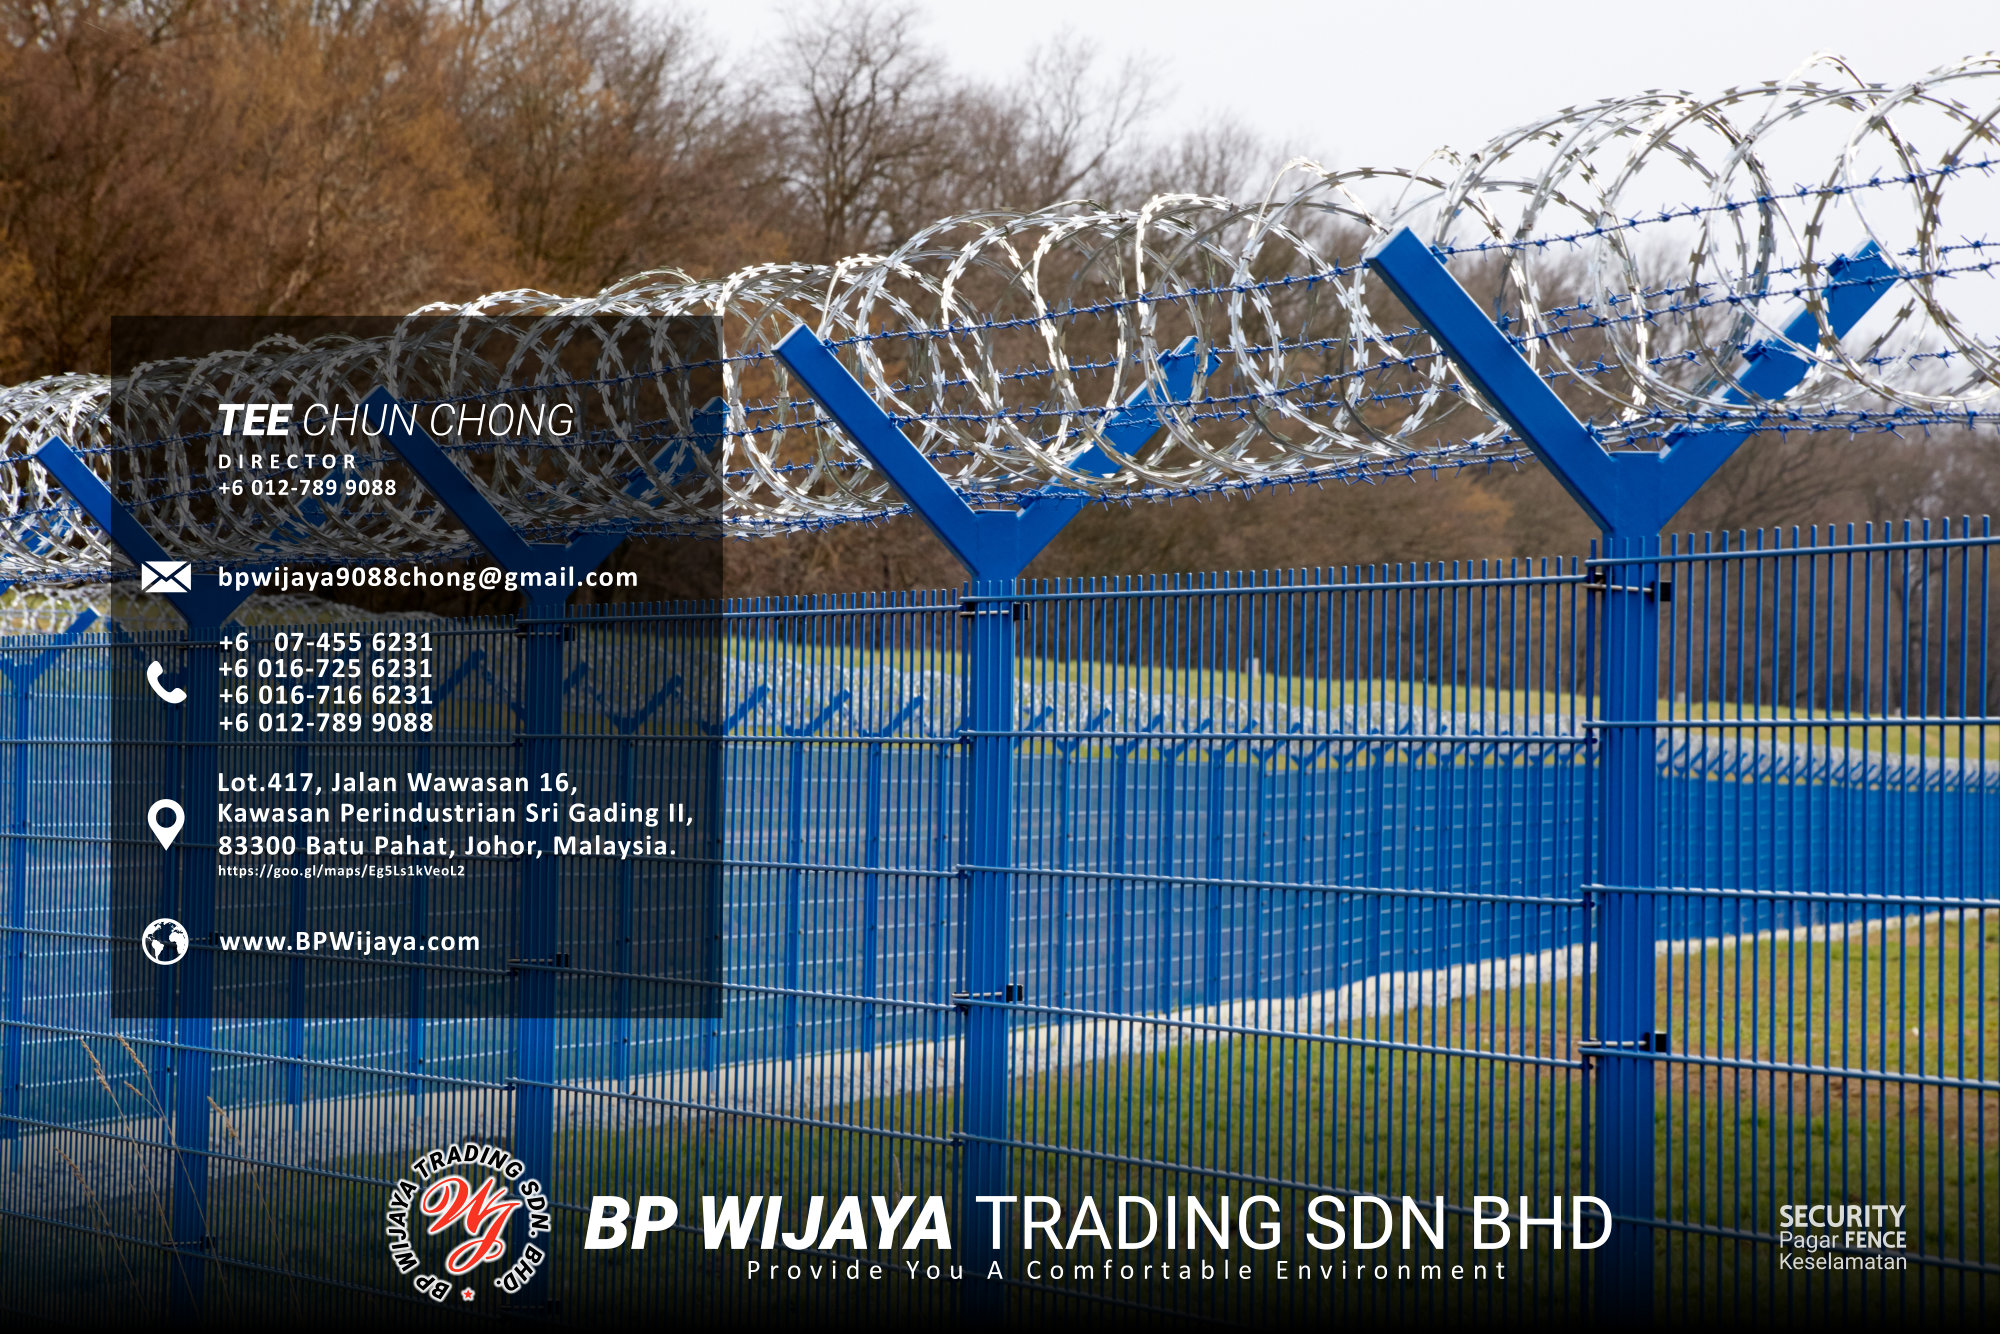 Kuala Lumpur Security Fence Supply we are manufacturer of security fence BP Wijaya Trading Sdn Bhd Safety Fence Building Materials for Housing Construction factory fence house beauty fence A03-009